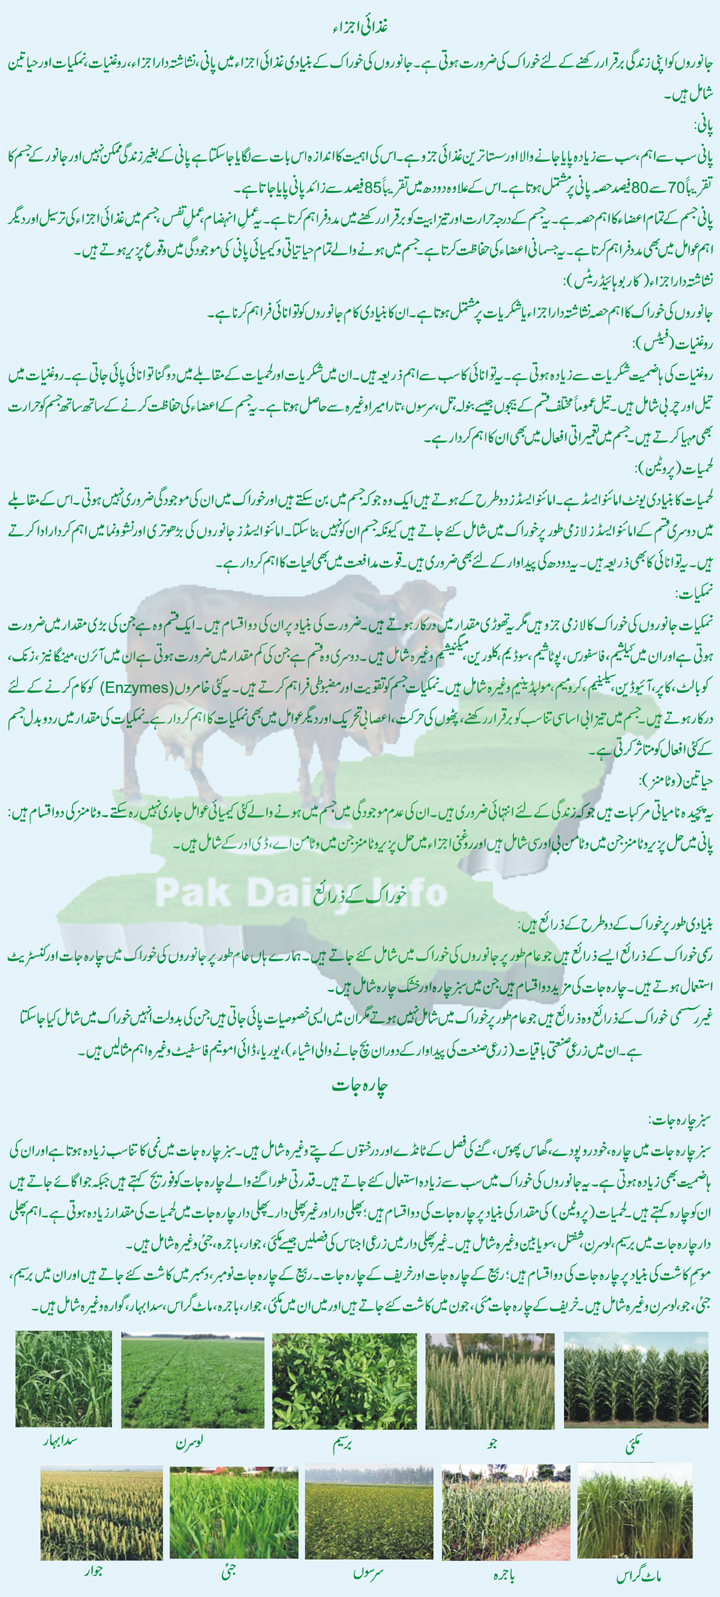 Pdf) practical dairy farming (in urdu).